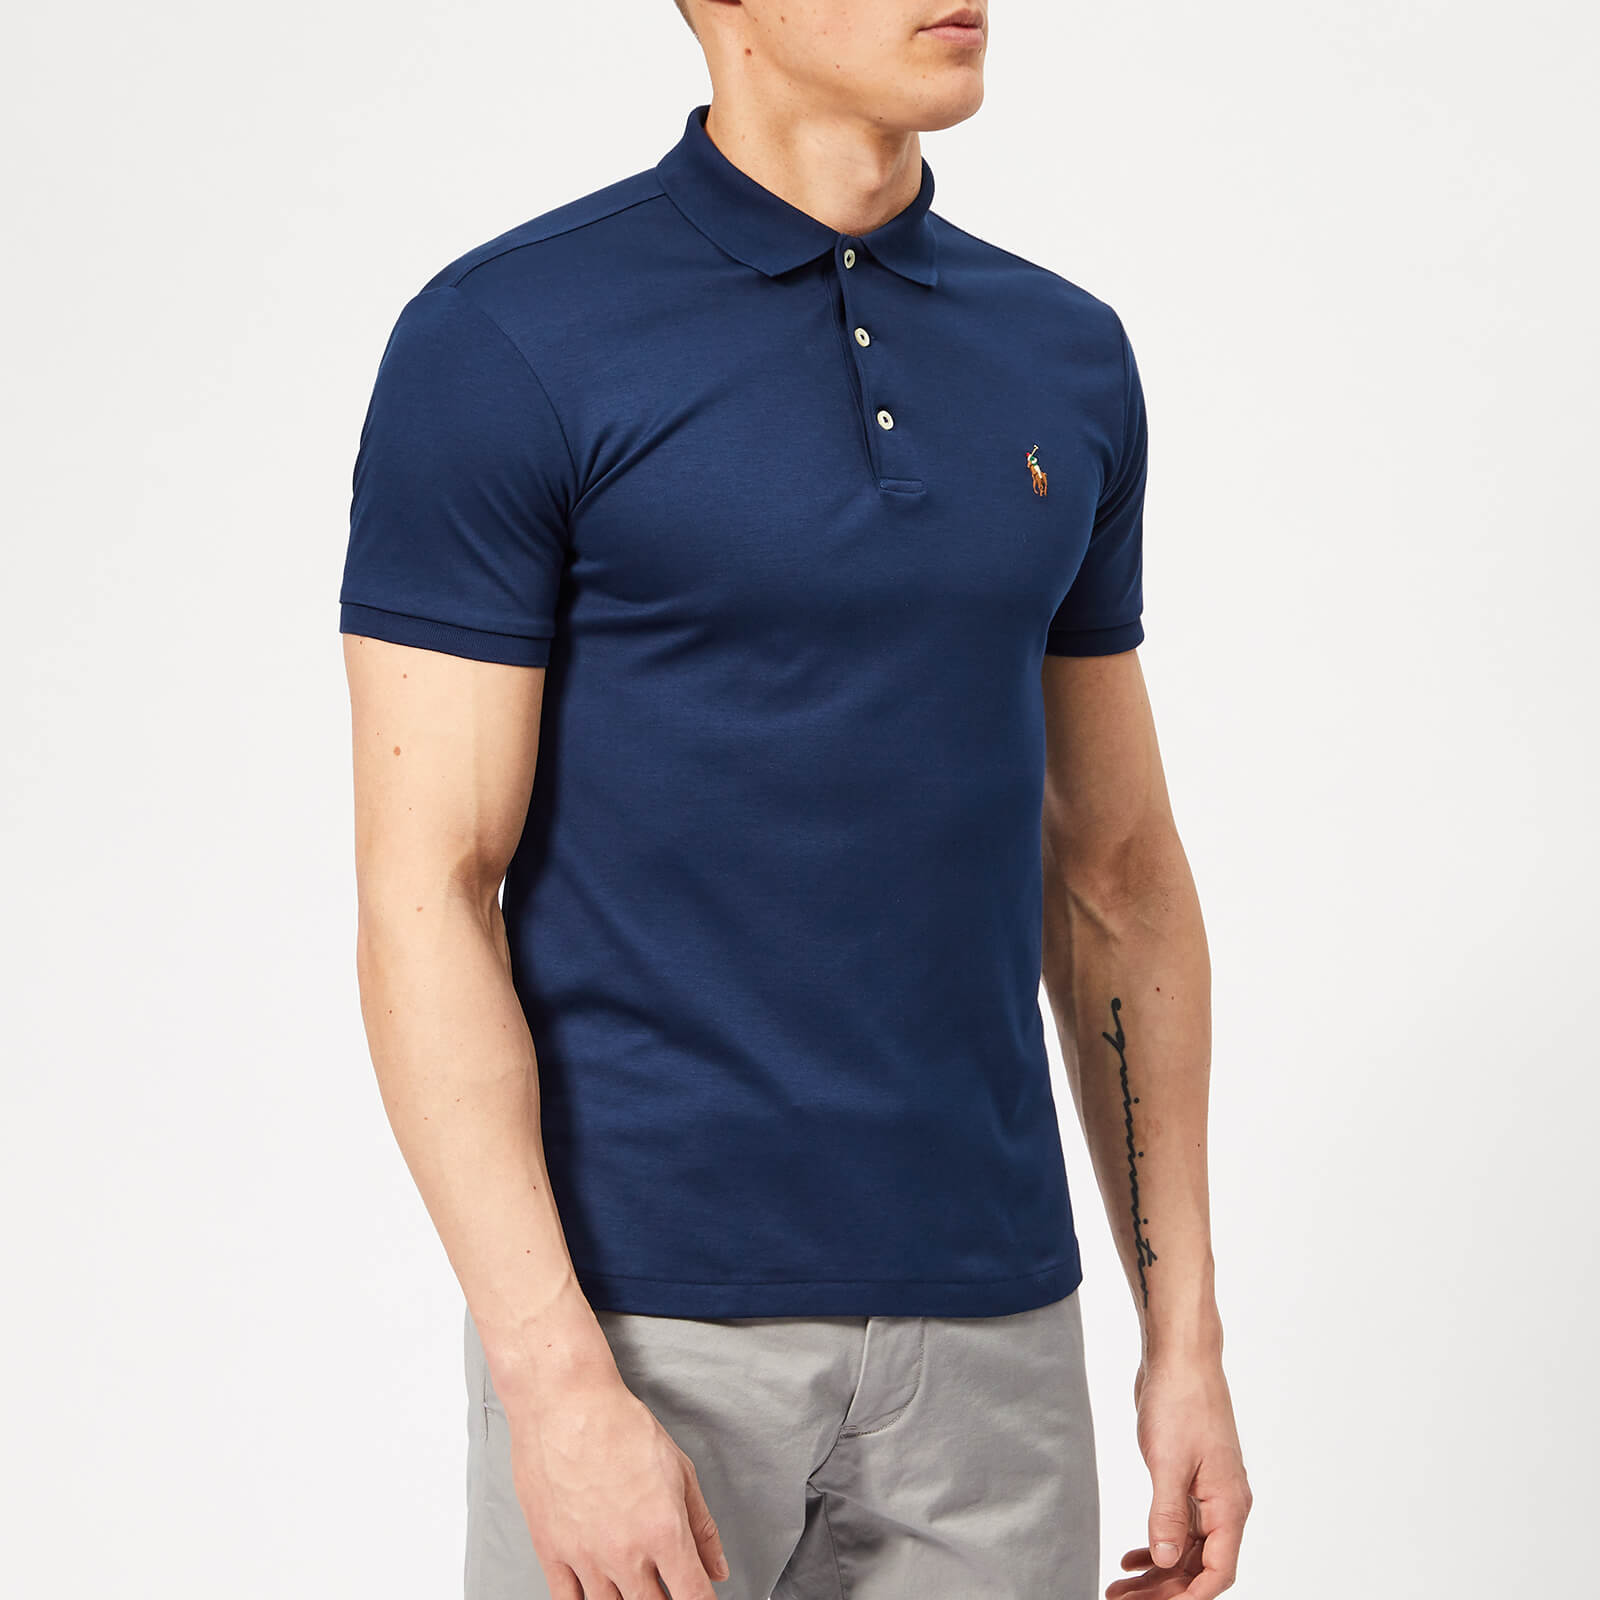 daf745f8 Polo Ralph Lauren Men's Pima Cotton Slim Fit Polo Shirt - Holiday Navy